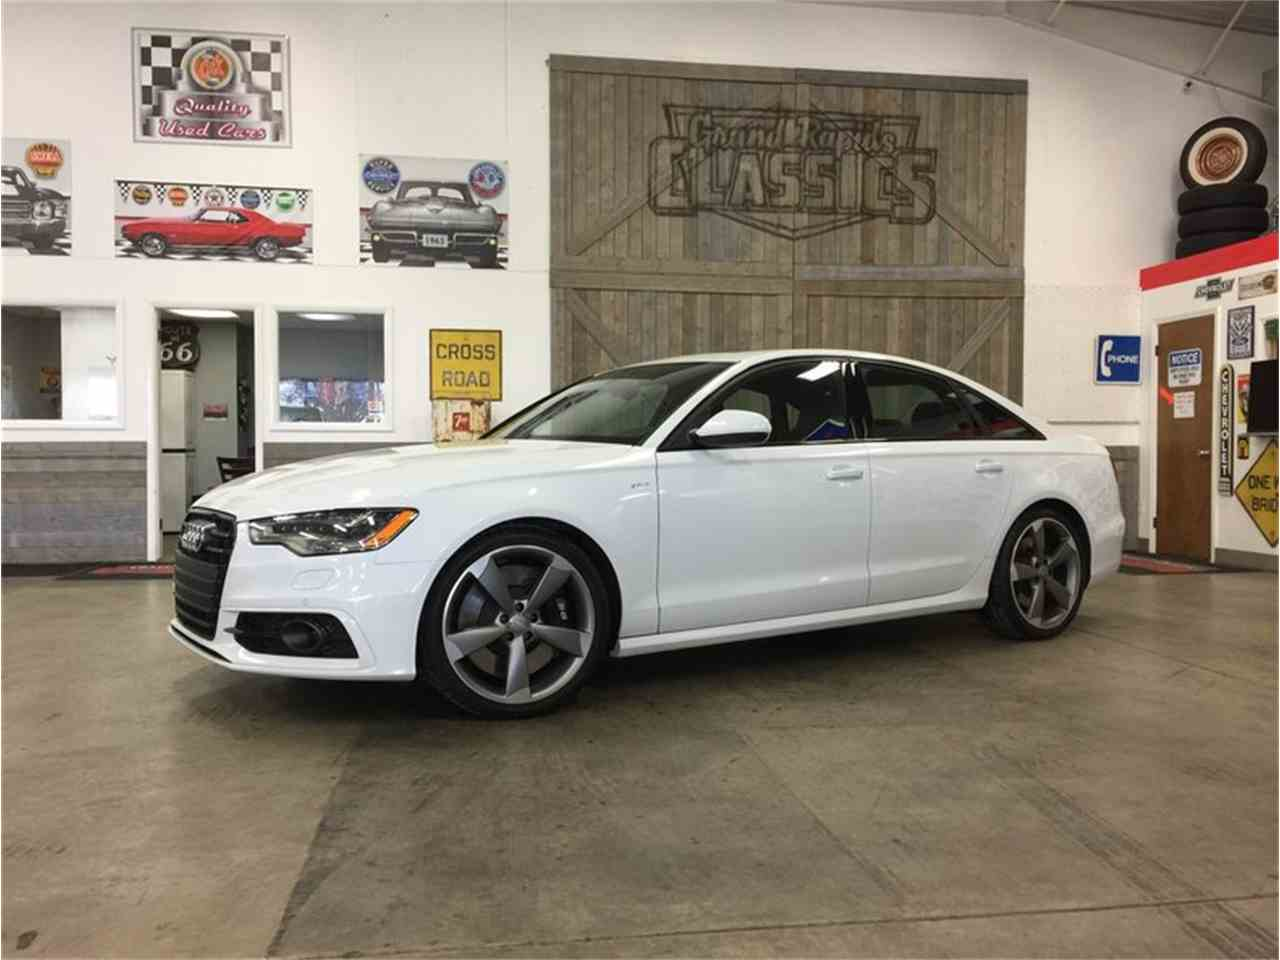 2014 audi s6 for sale classiccars cc 1075187 large picture of 14 s6 n1mb sciox Images